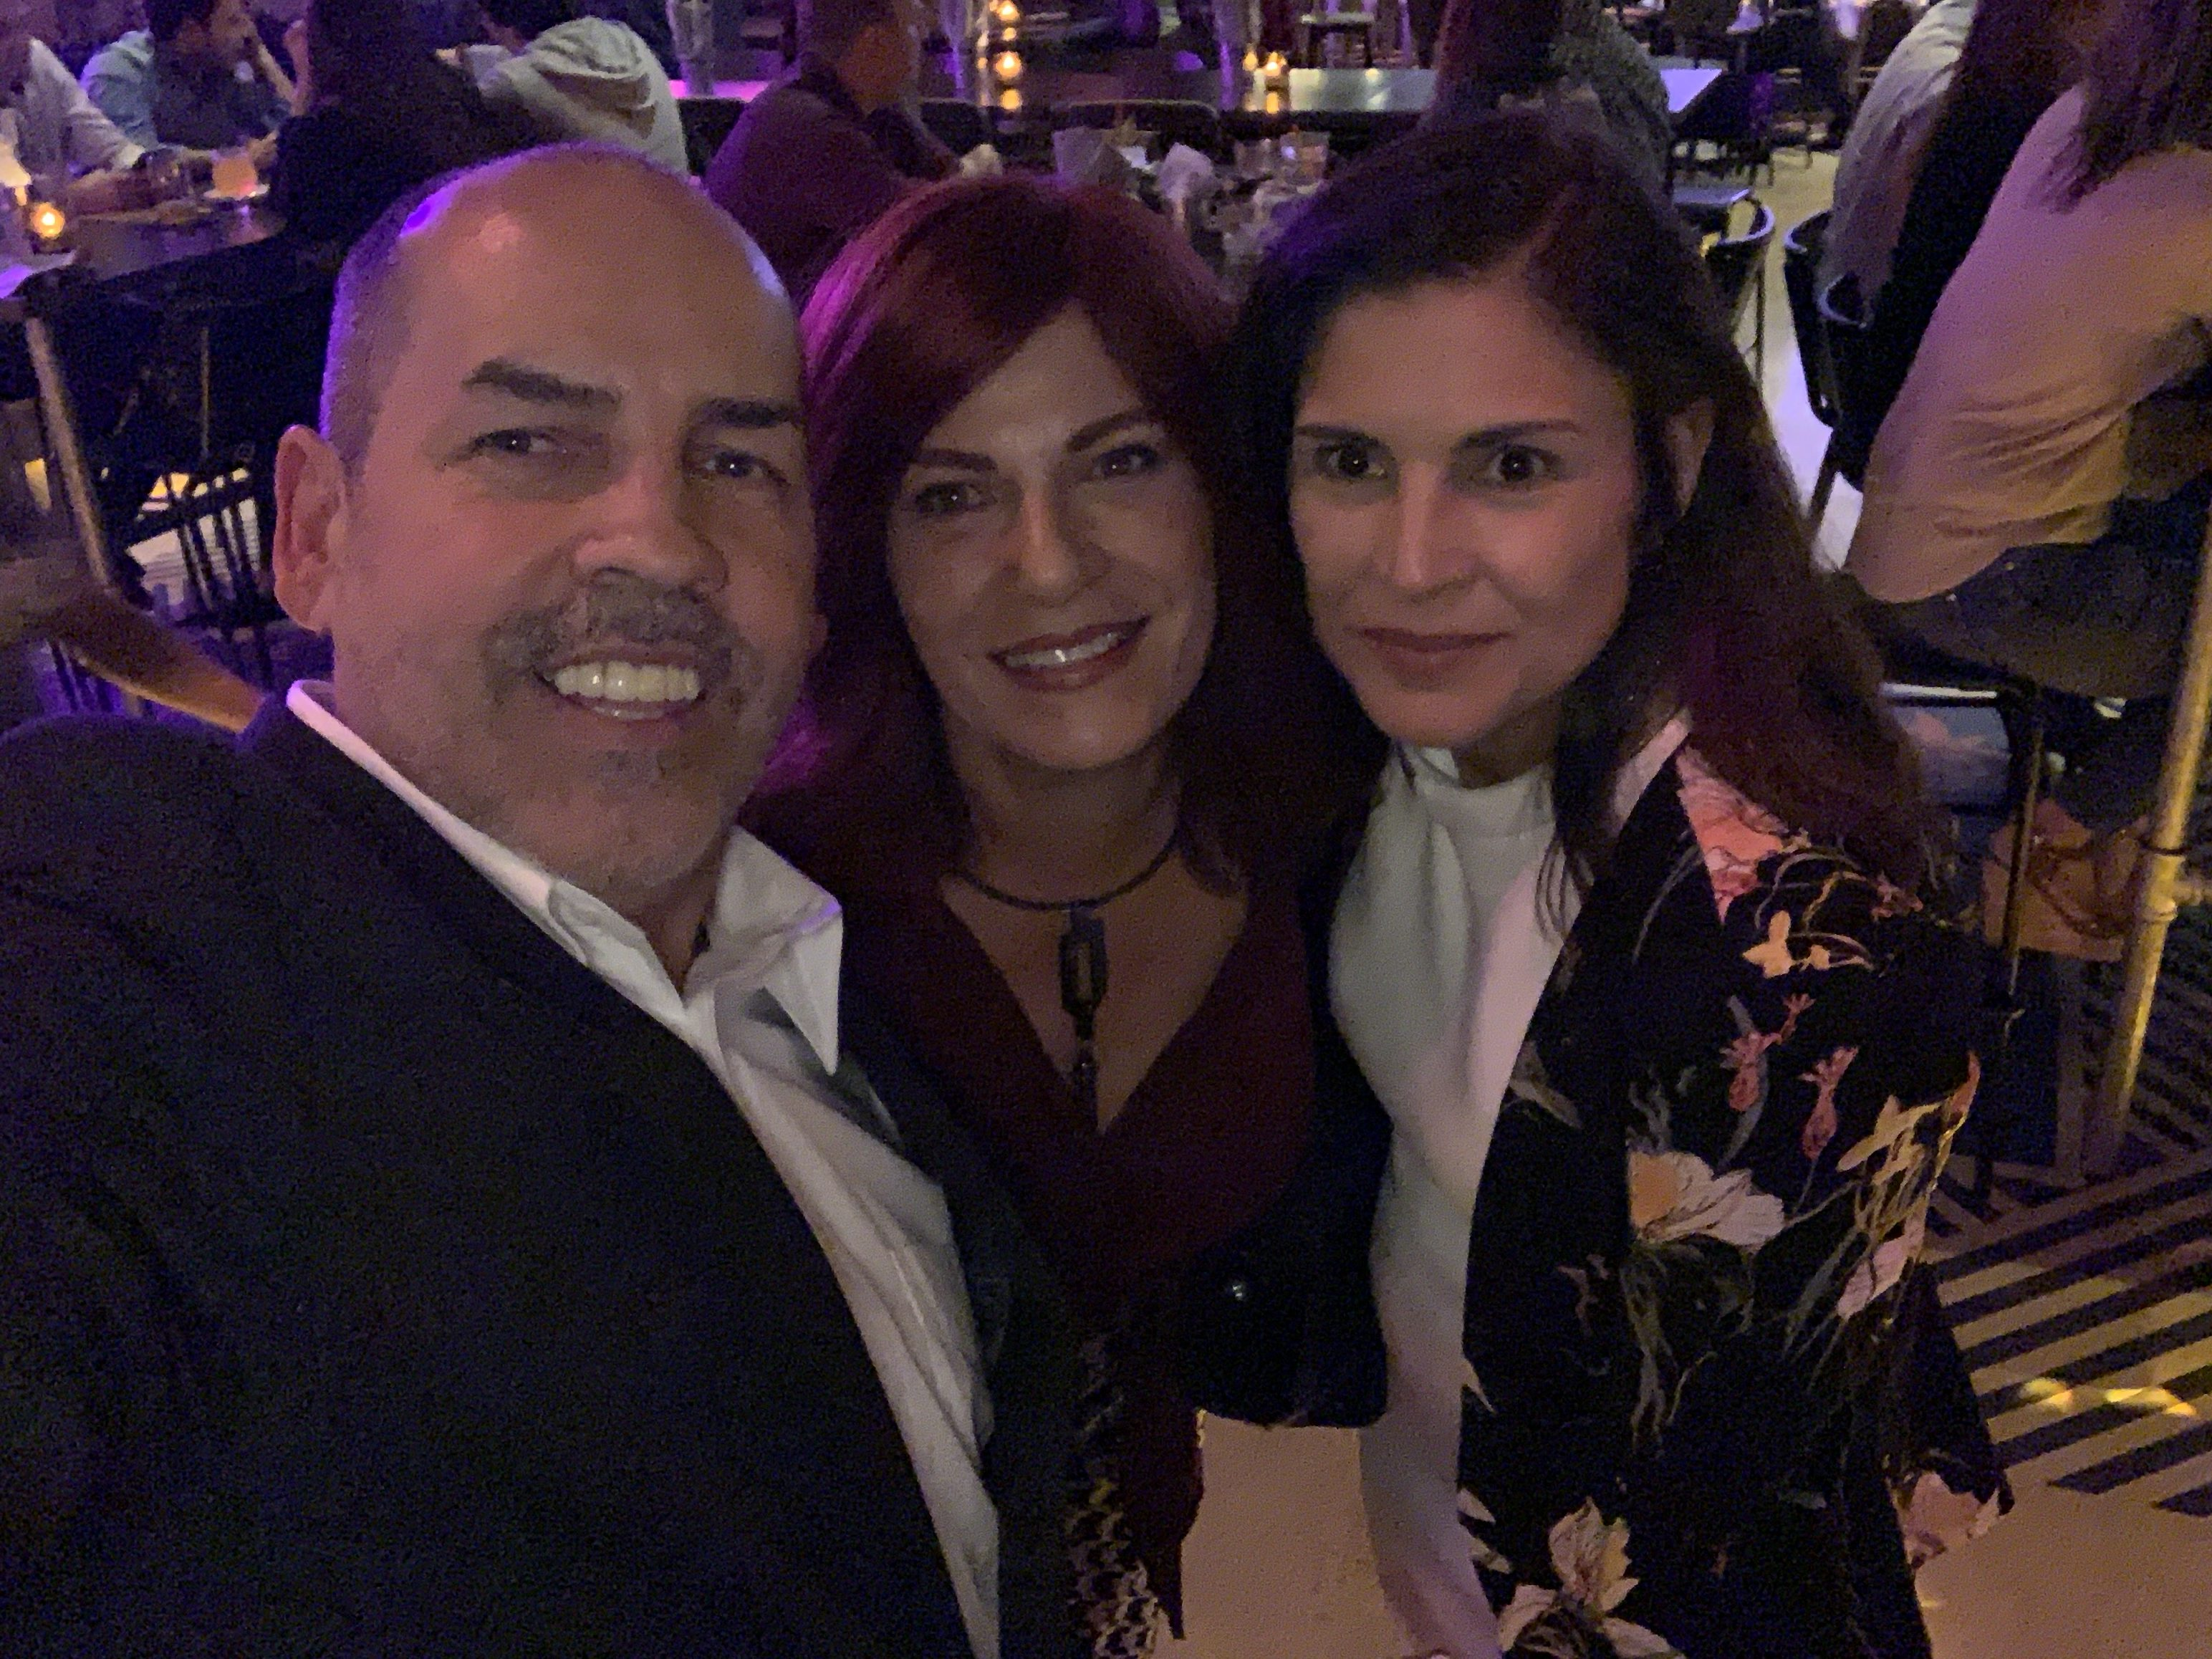 Manny Sarmiento, selfie with others at the Copper Blues Improv Grand Opening event hosted by the Doral Chamber of Commerce.